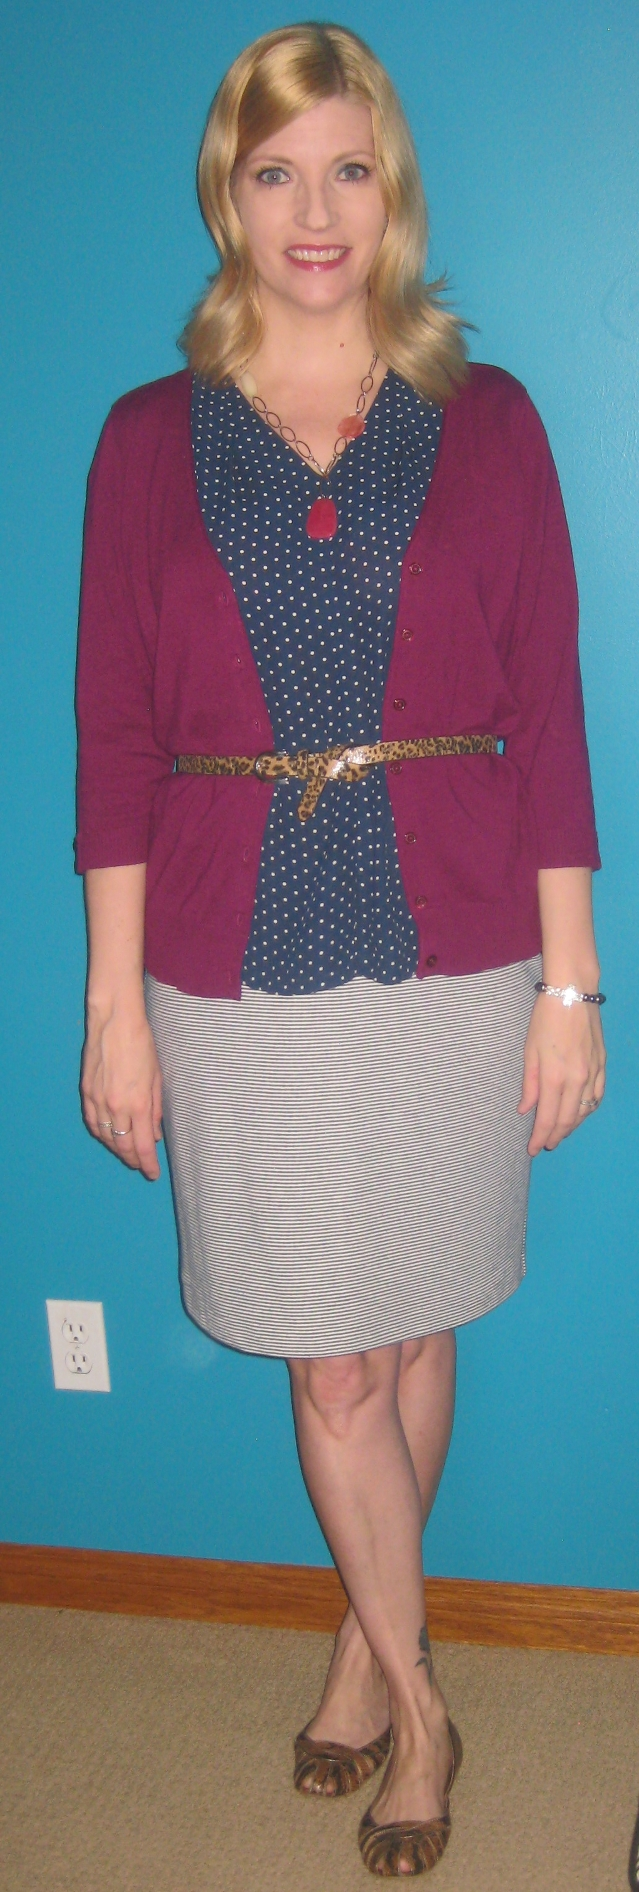 Core item #5 stripe skirt $3.50, core item #10 polka dot top $3.50, raspberry cardi extra $4.50, belt gifted but thrifted and shoes $3 plus accessories from my closet